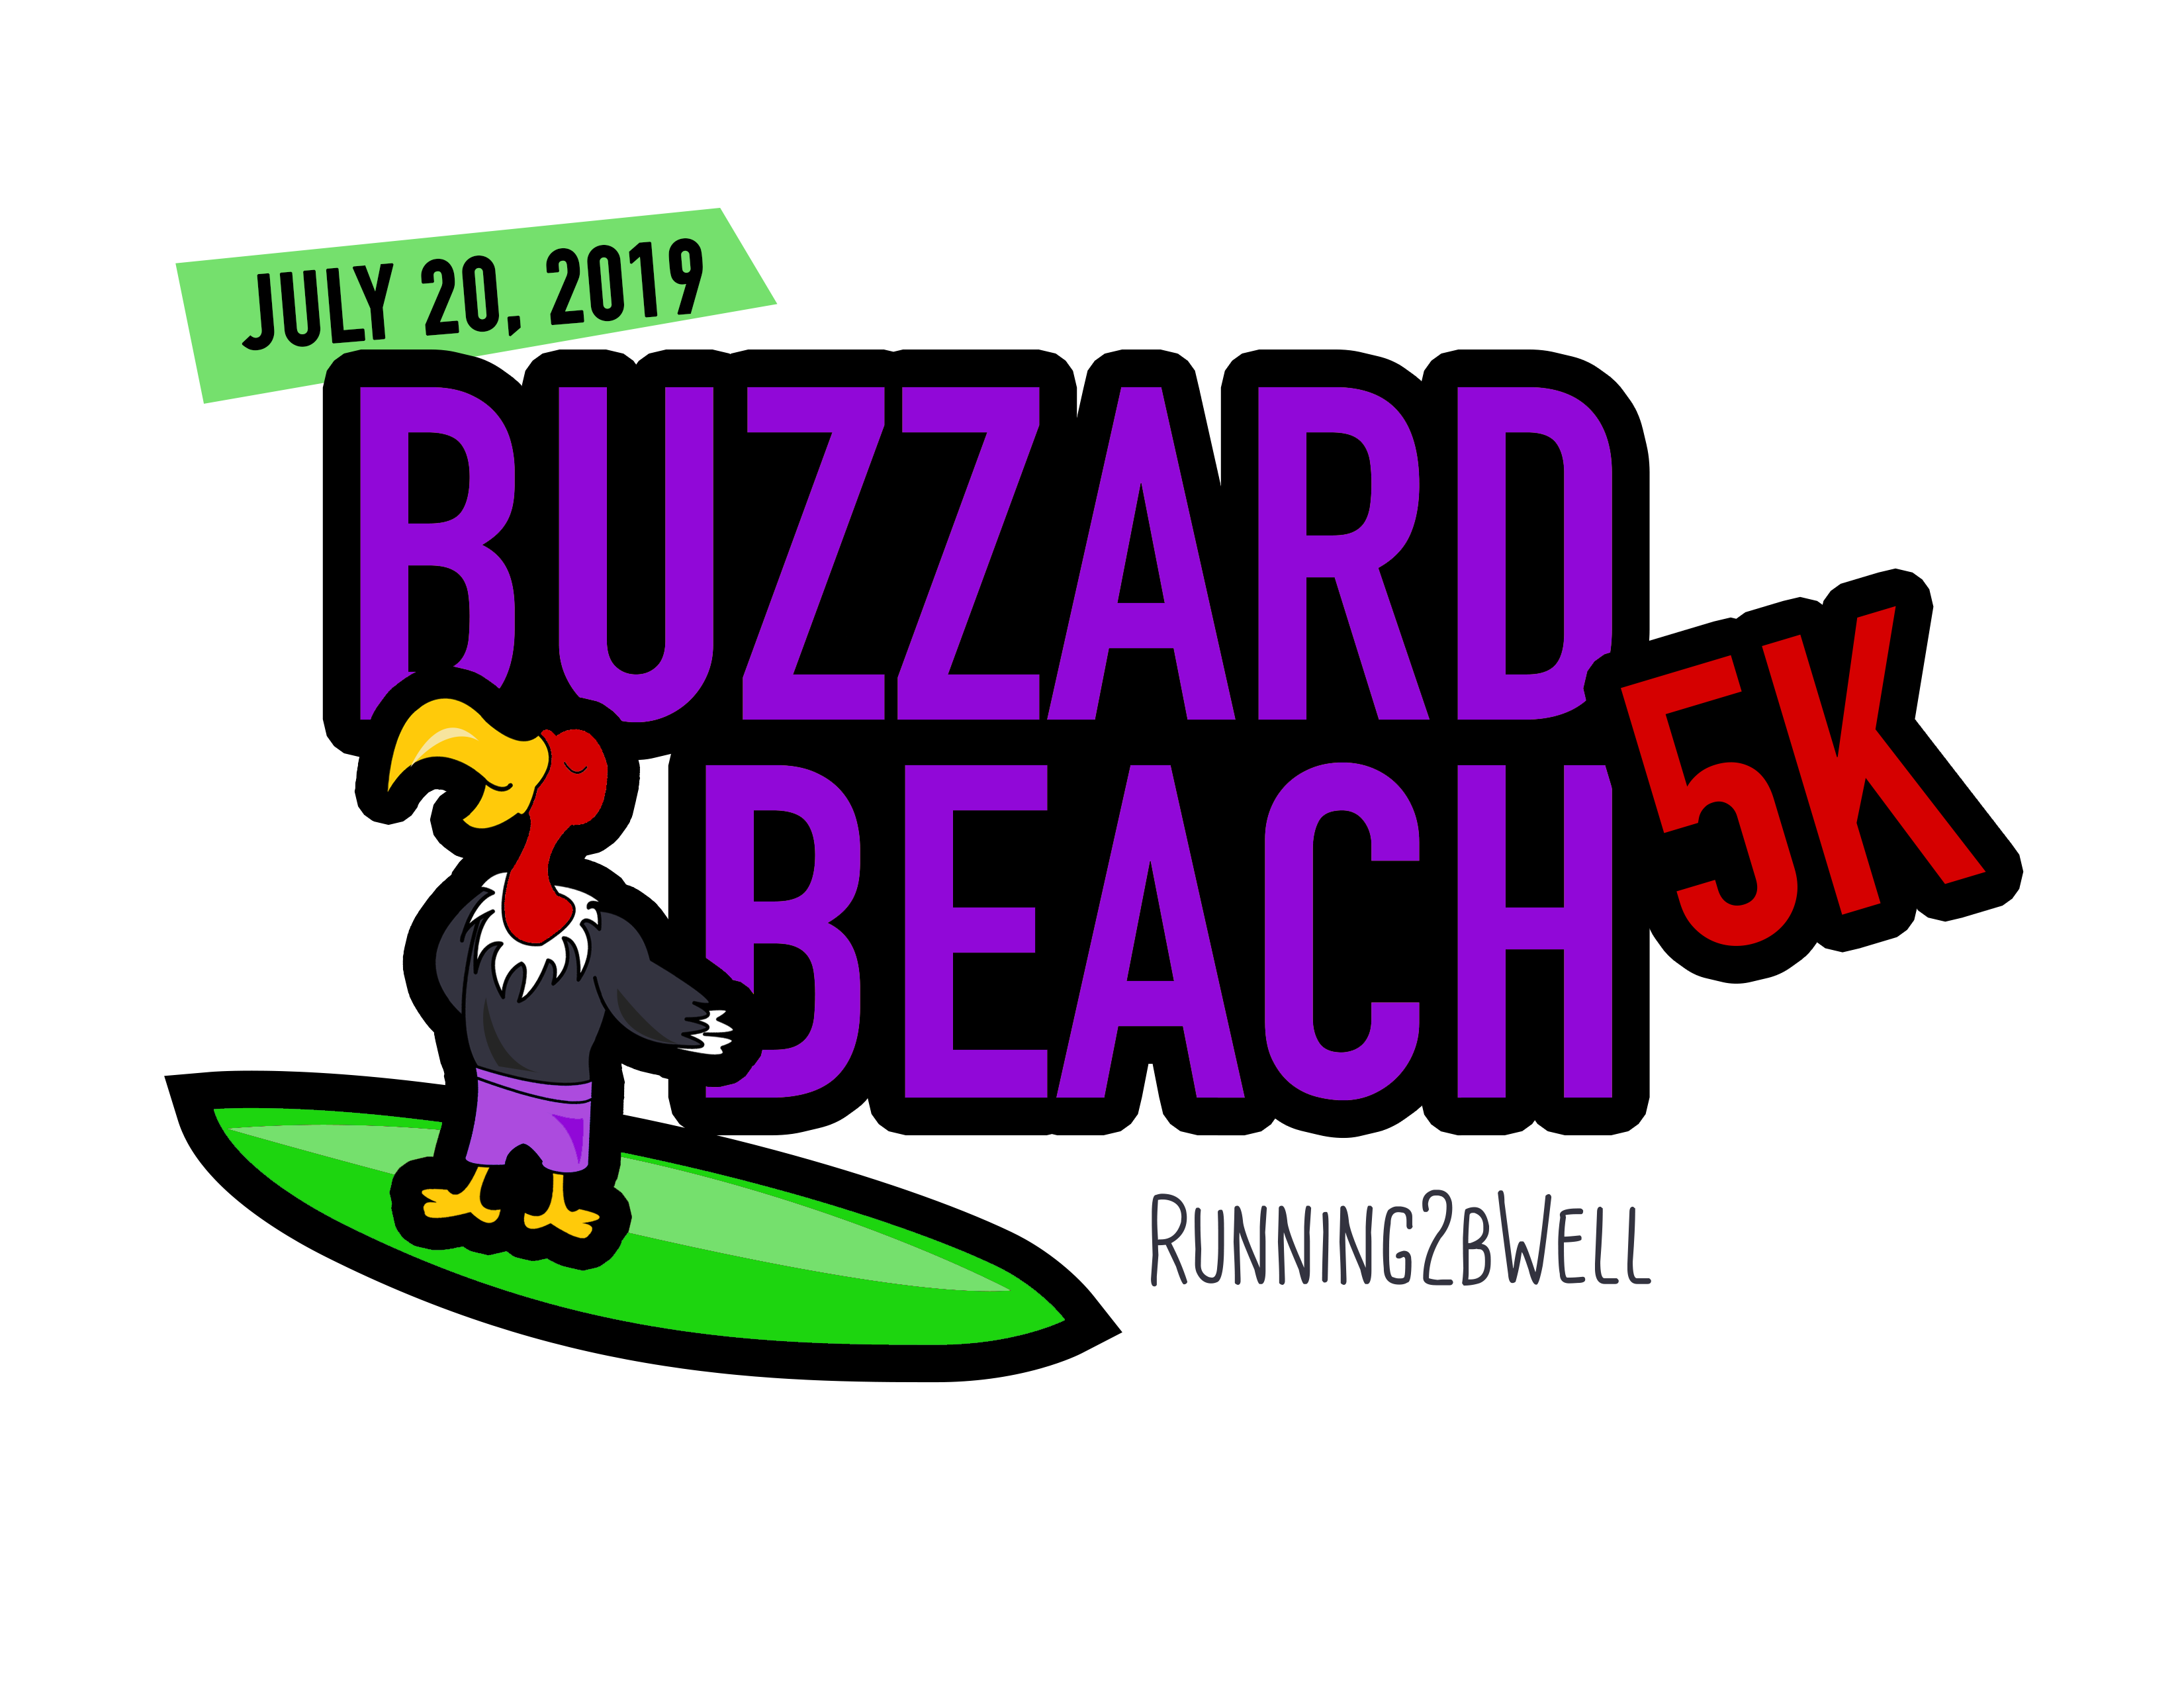 Buzzard Beach 5K